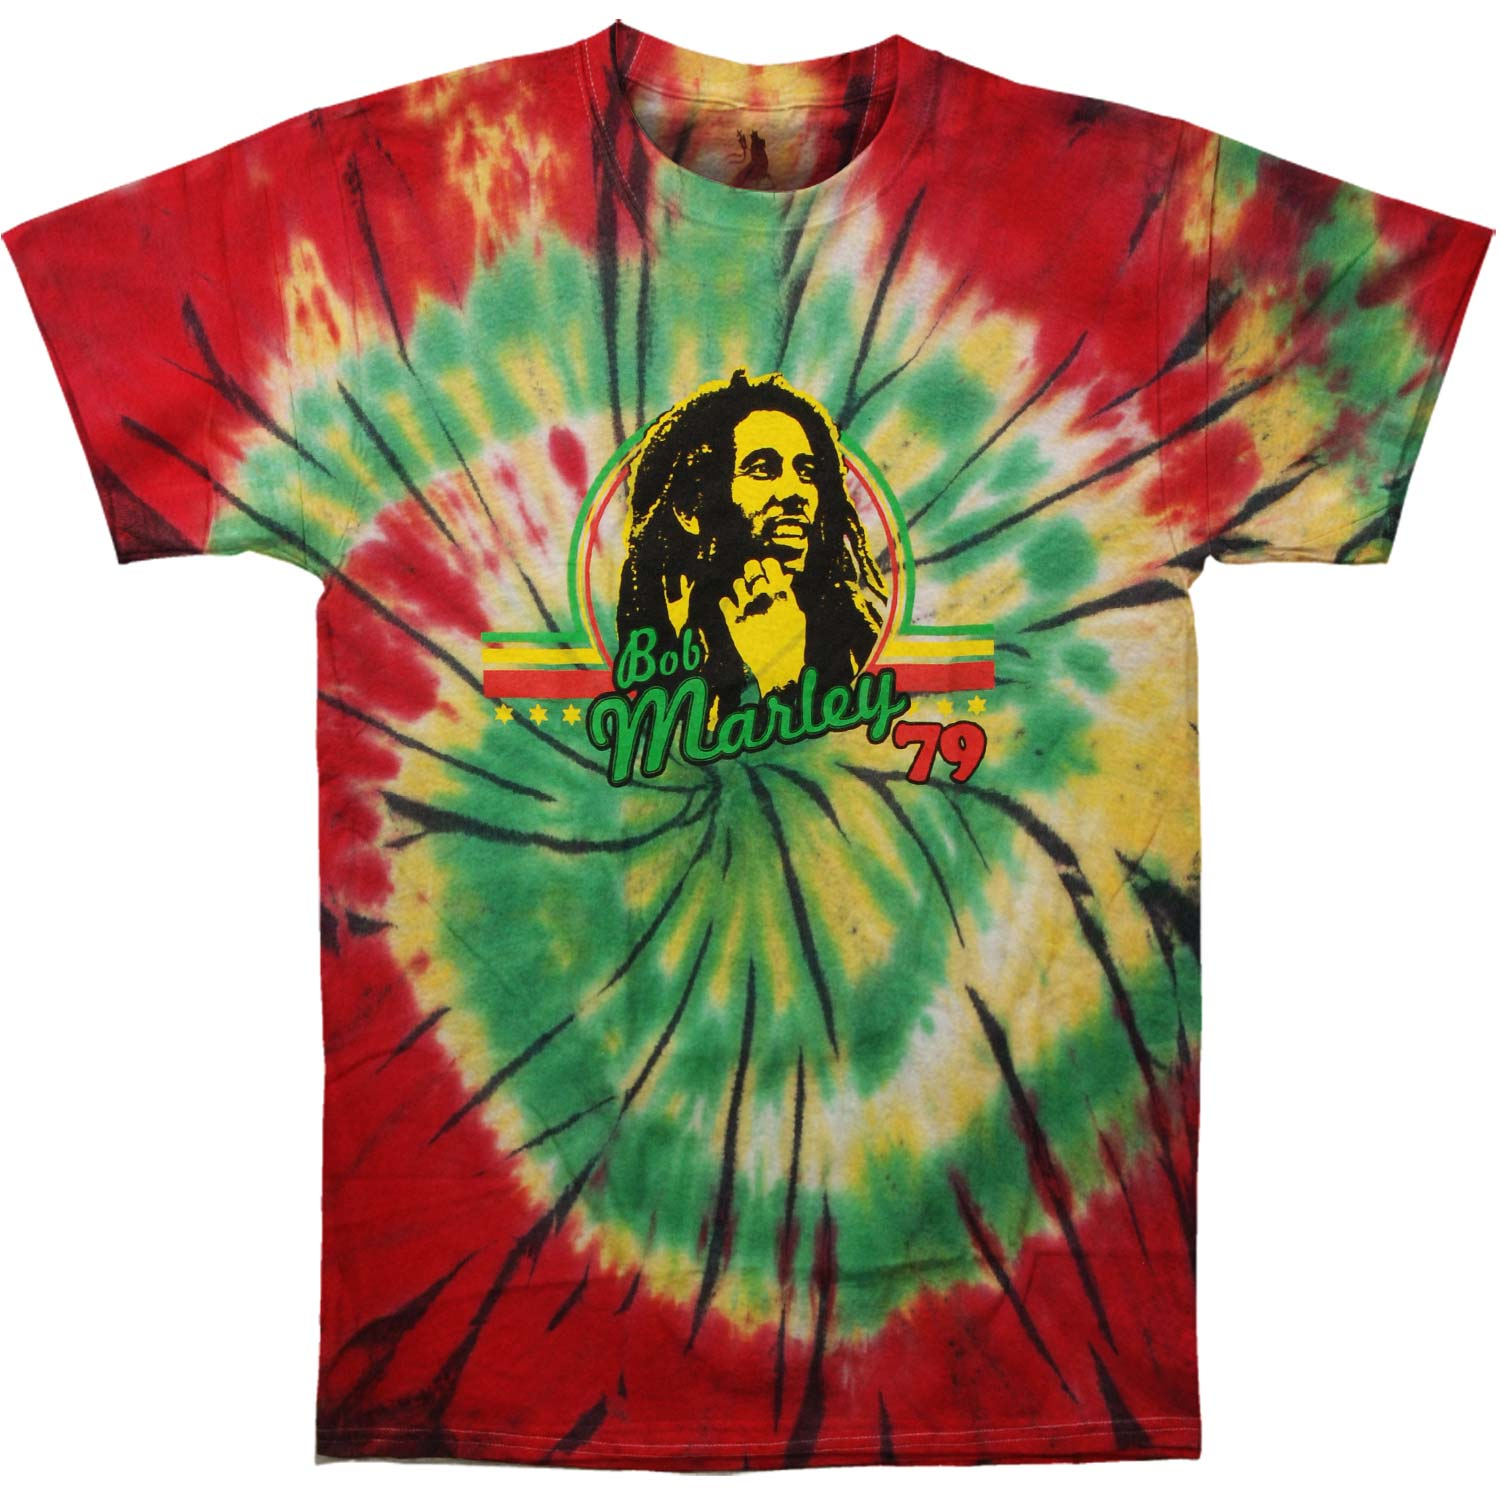 Bob Marley Men's  '79 Tie Dye T-shirt Multi